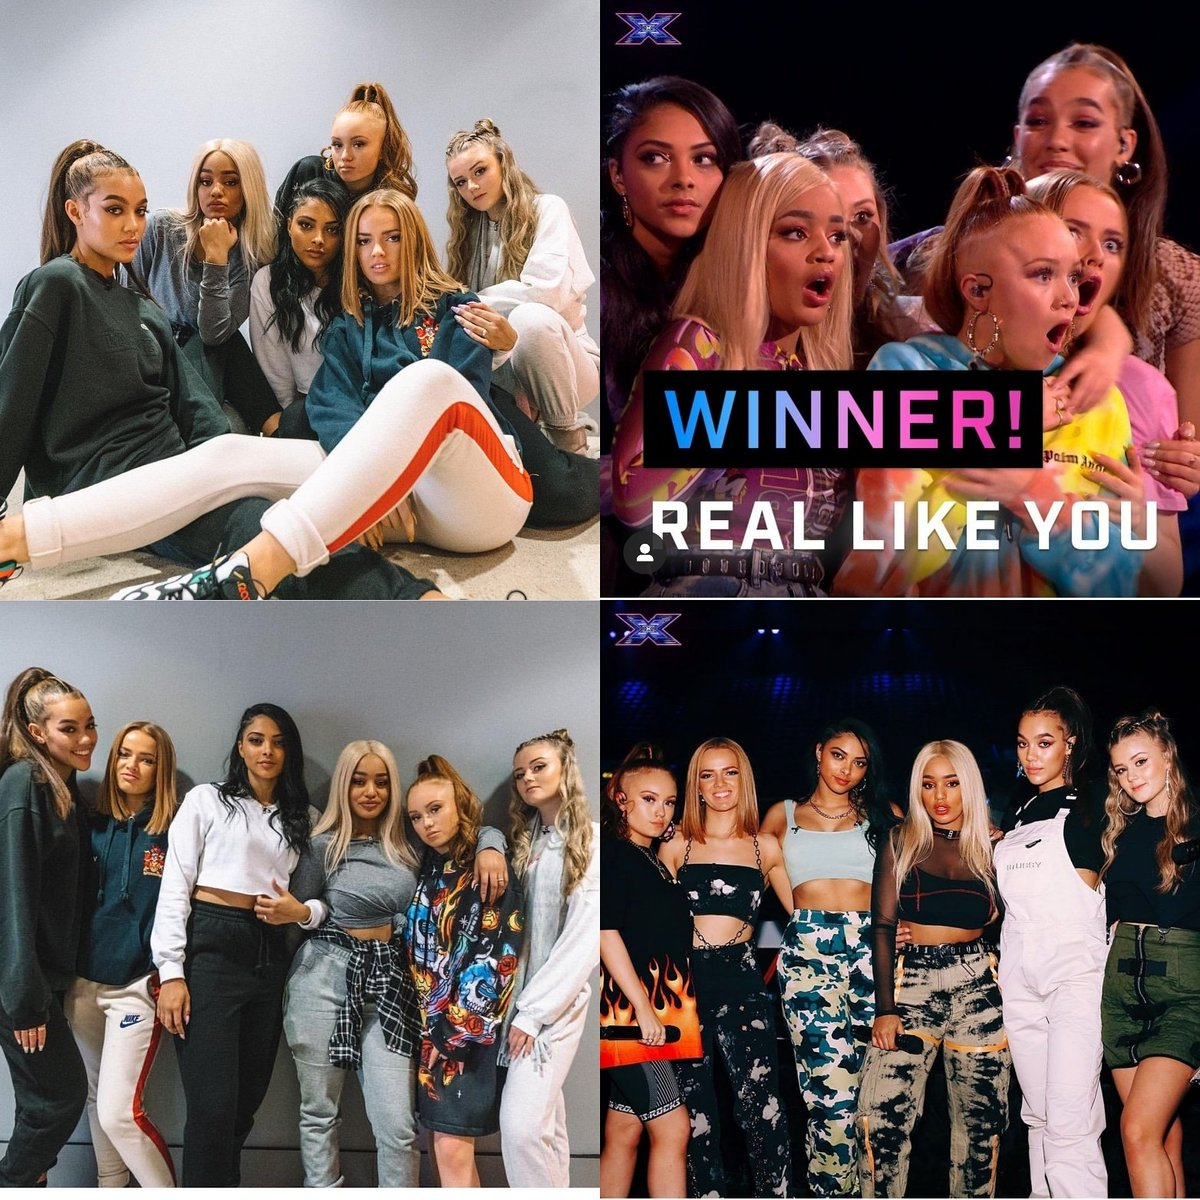 Congratulations to the girls @reallikeyouofficial for winning the @thexfactor beautiful song to end the show. #reallikeyou #xfactor #girlsband #makup #girls #winning #winner #lindacosgroveshow #pr #socialmedia #instafamous pic.twitter.com/L4VXNNZp8W